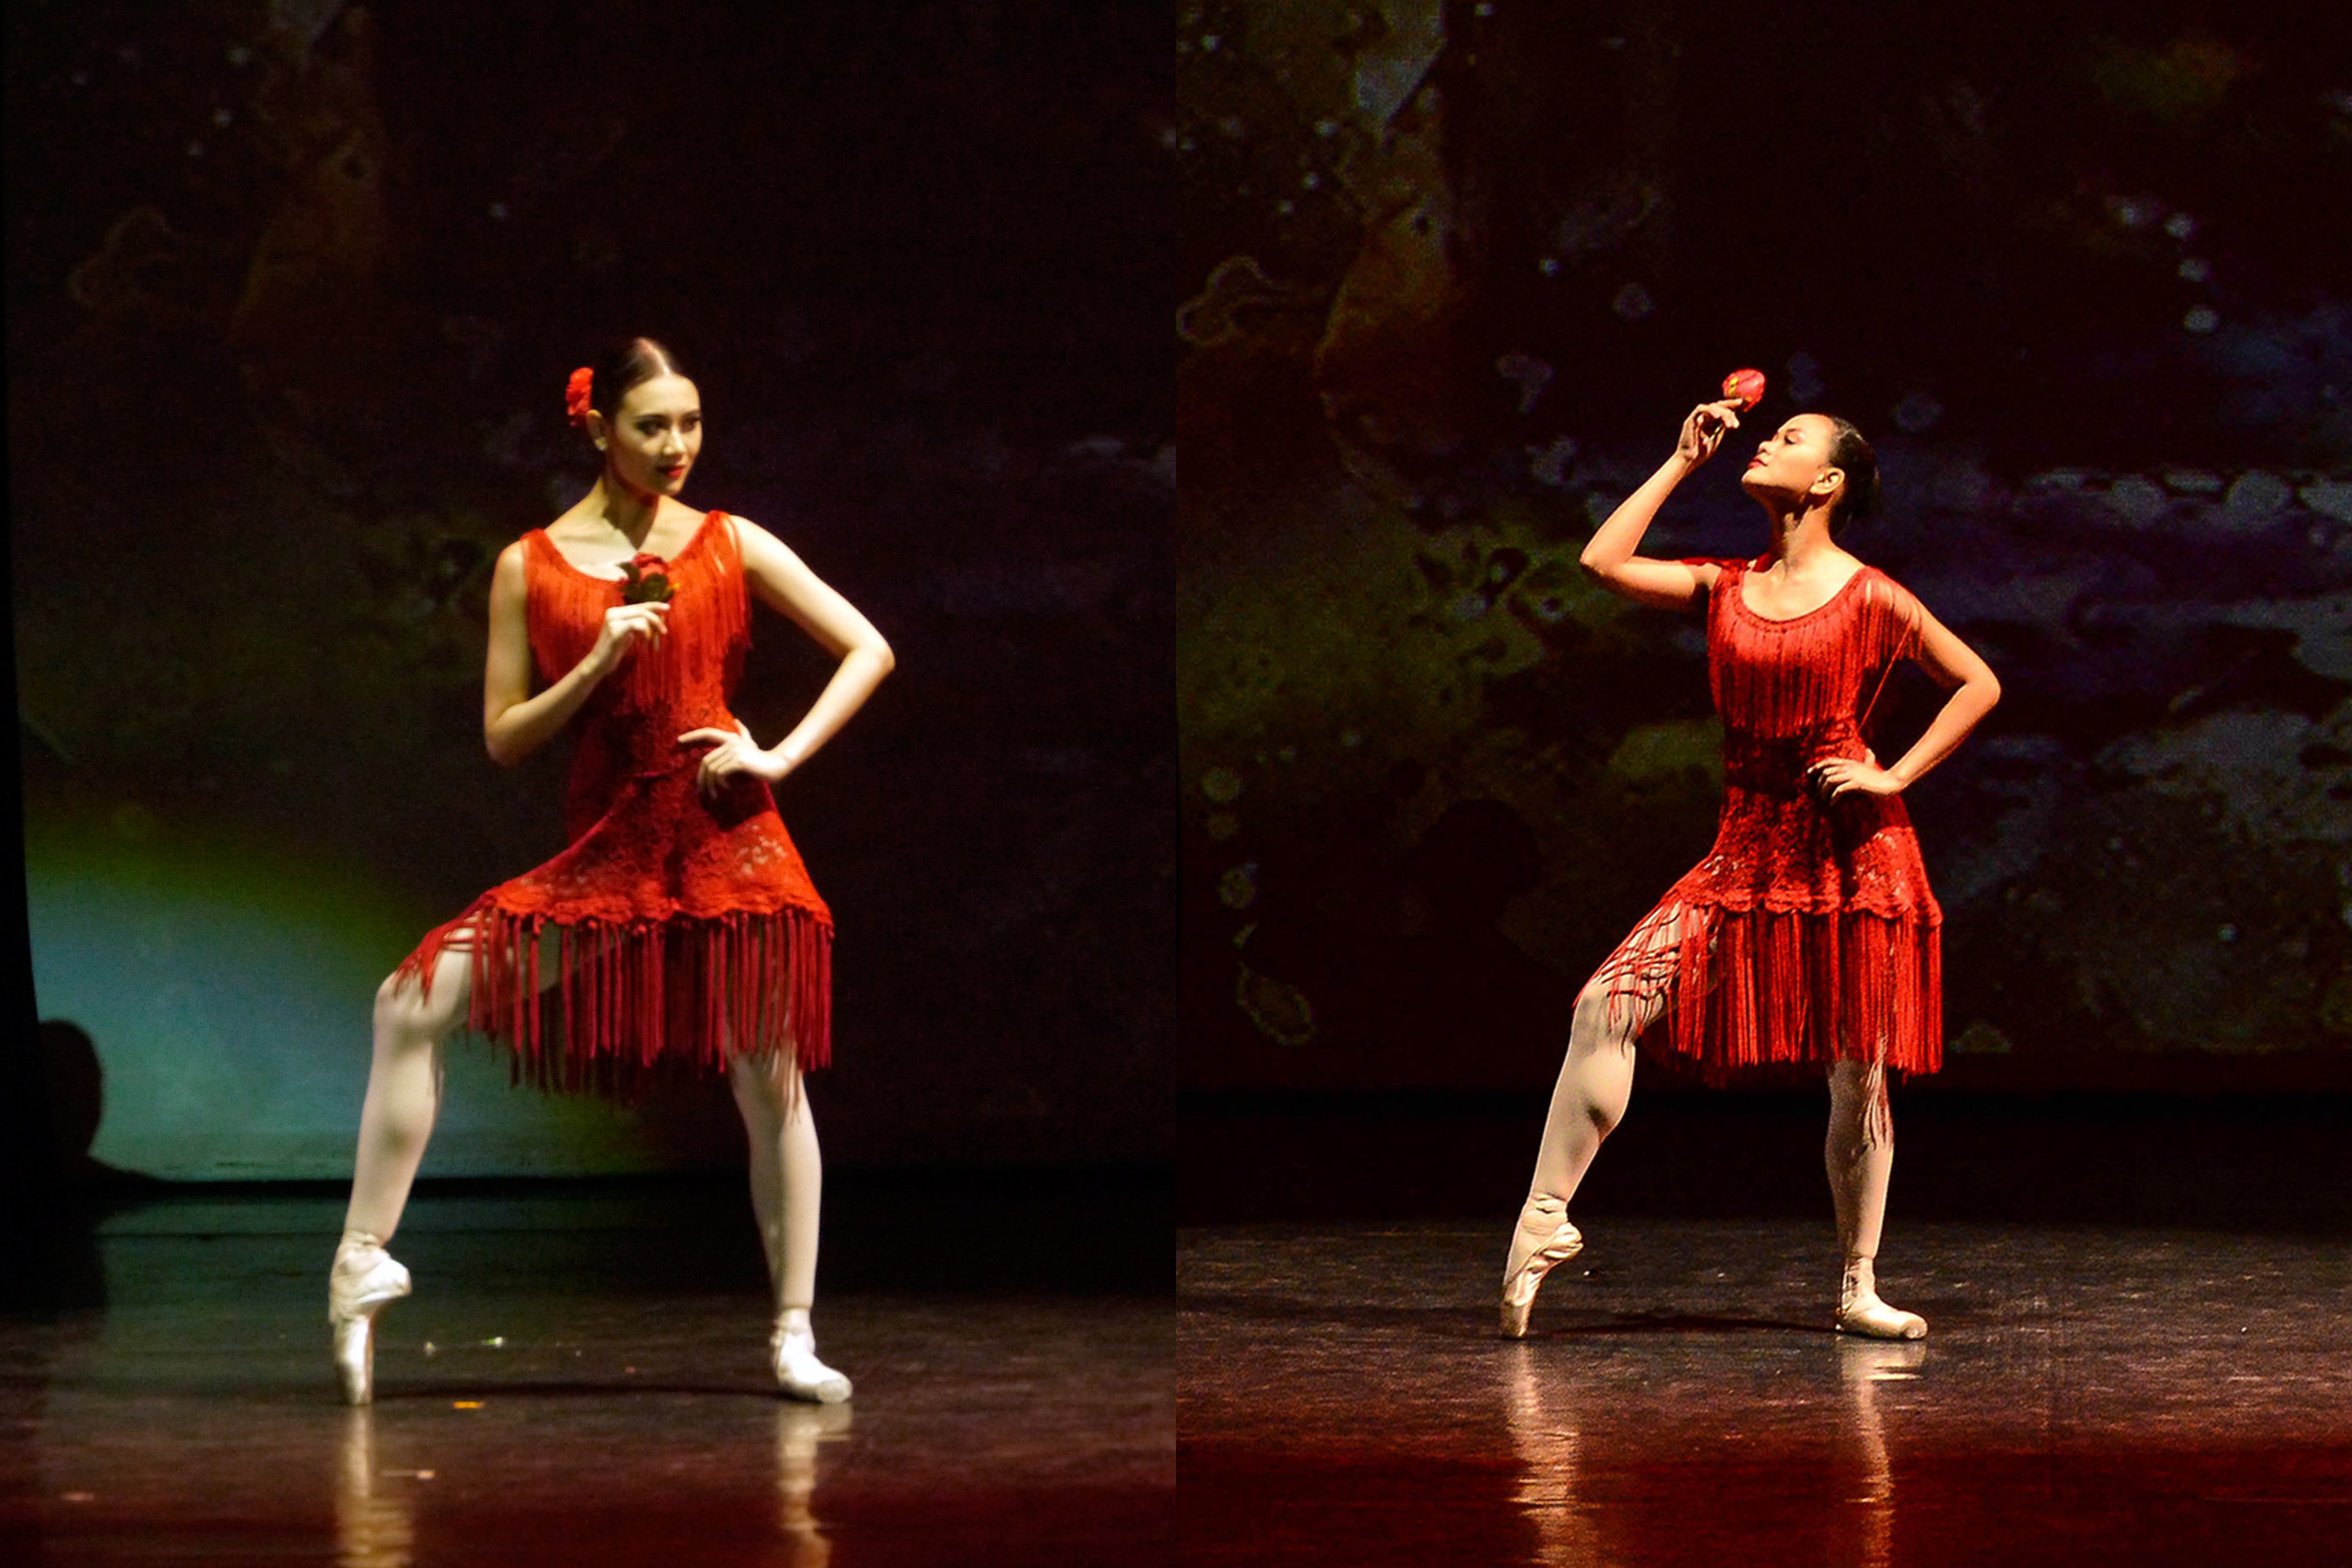 For Ballet Manila principal dancer Abigail Oliveiro and company artist Rissa May Camaclang, portraying the sultry seductress that is Carmen was a dream fulfilled. Left photo by Giselle P. Kasilag; right photo by MarBi Photography